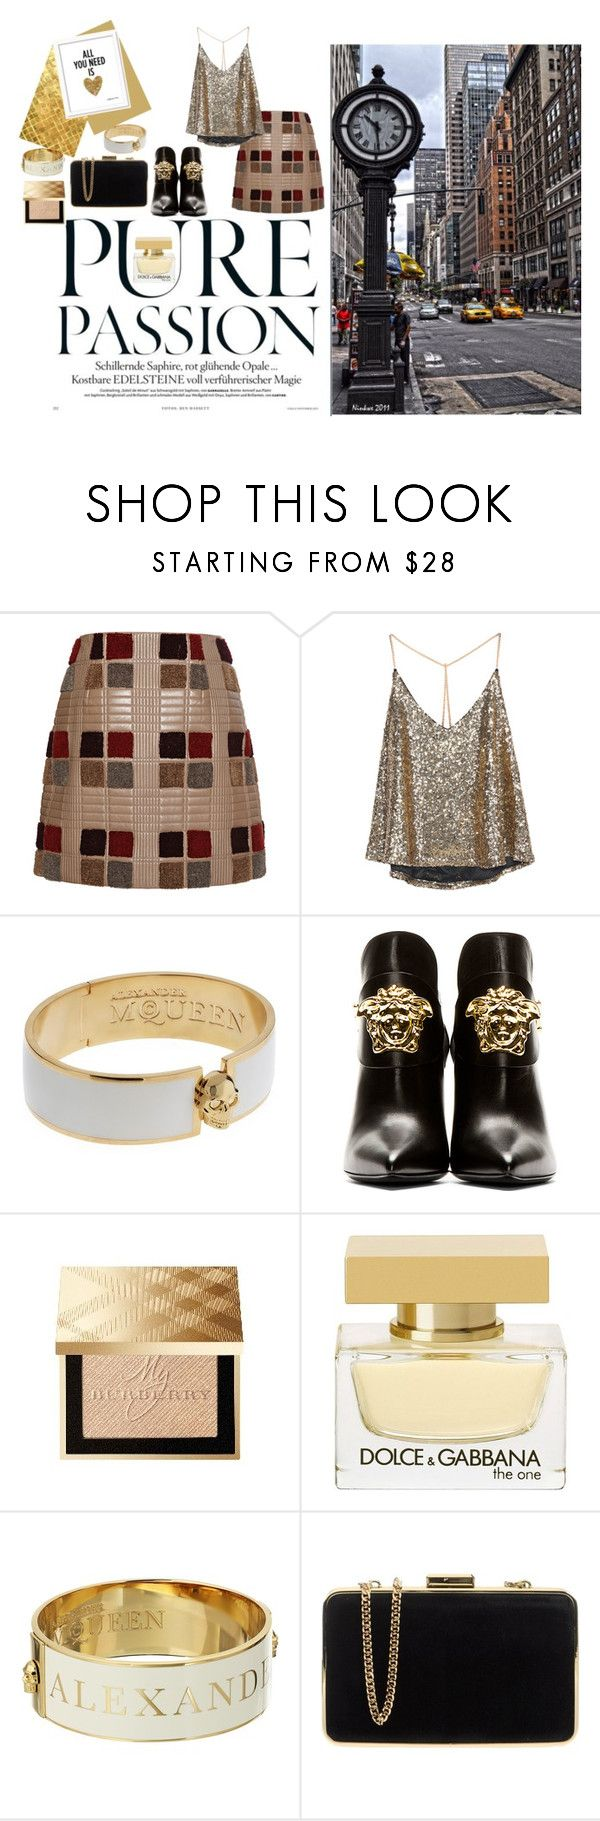 """Untitled #112"" by popescu-io on Polyvore featuring Marco de Vincenzo, Alexander McQueen, Avenue, Versace, Burberry, Dolce&Gabbana and MICHAEL Michael Kors"